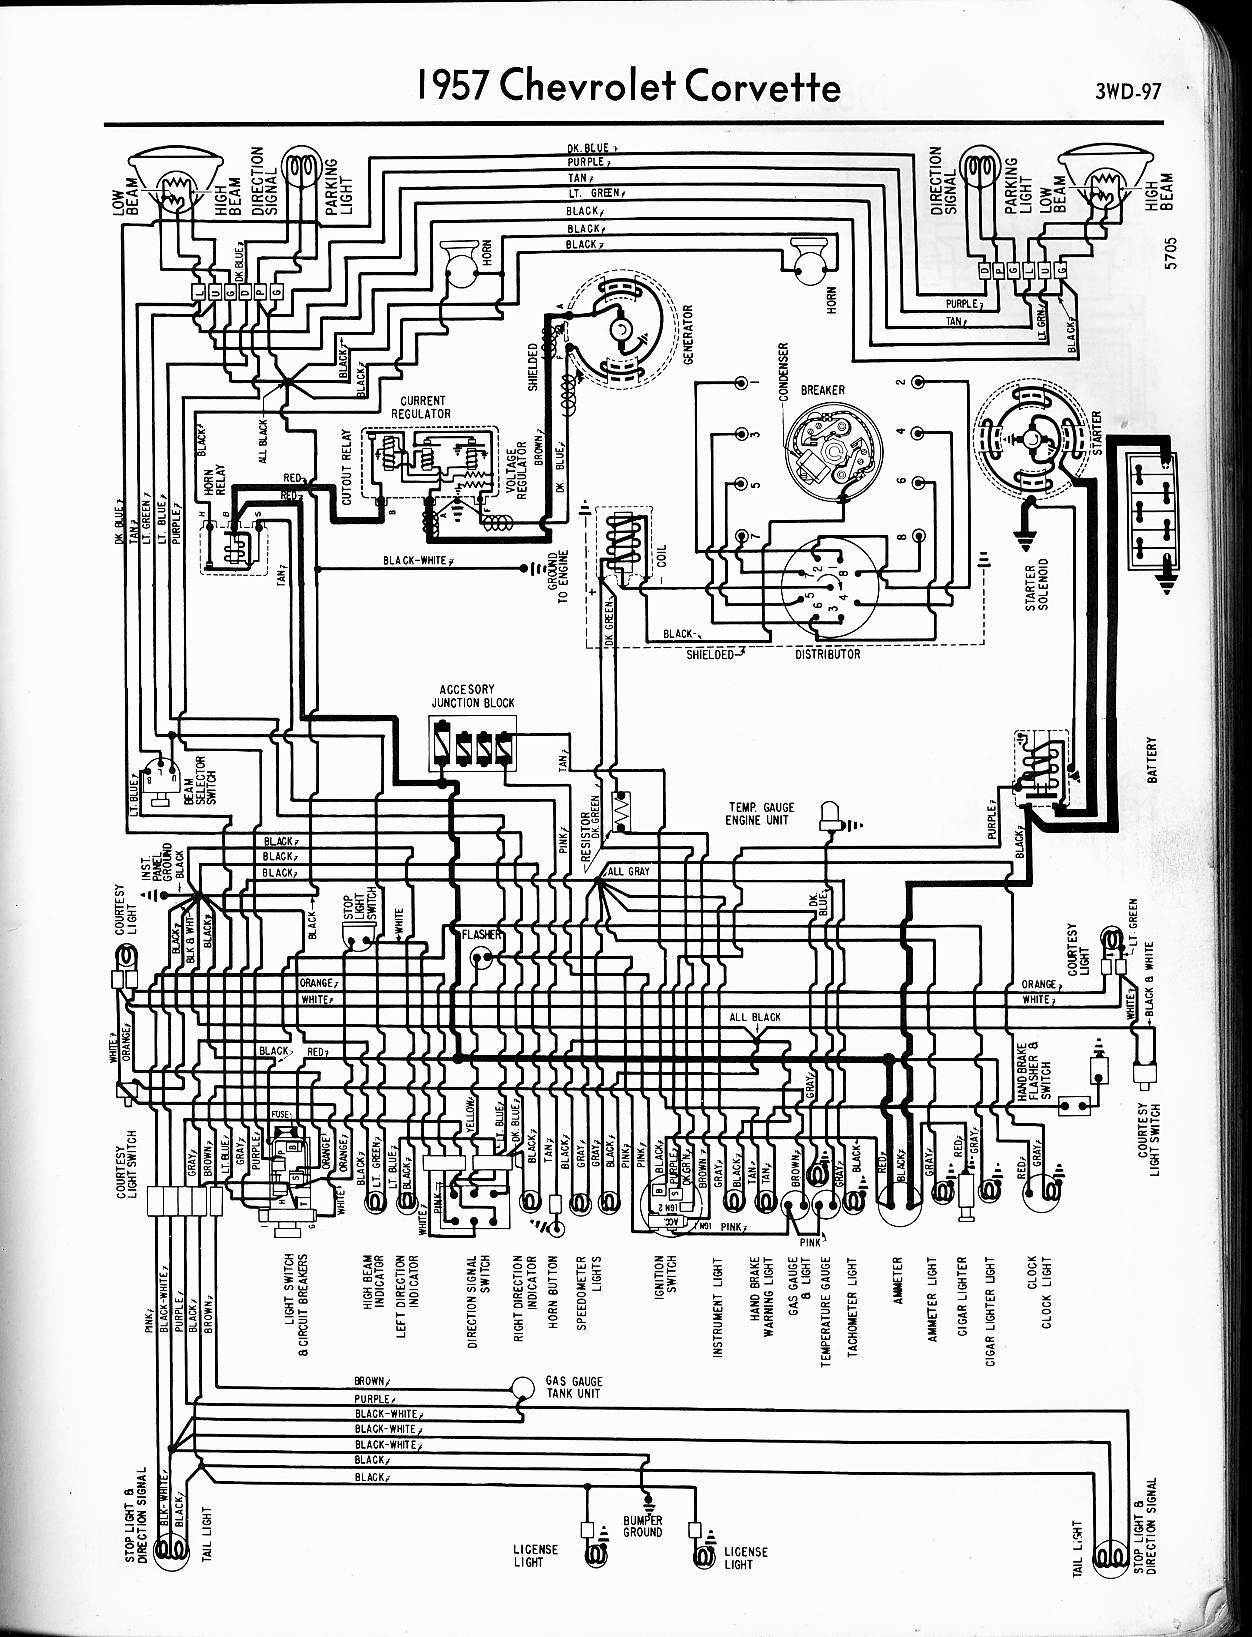 1965 Chevelle Wiring Diagram Car Pictures - WIRE Center •